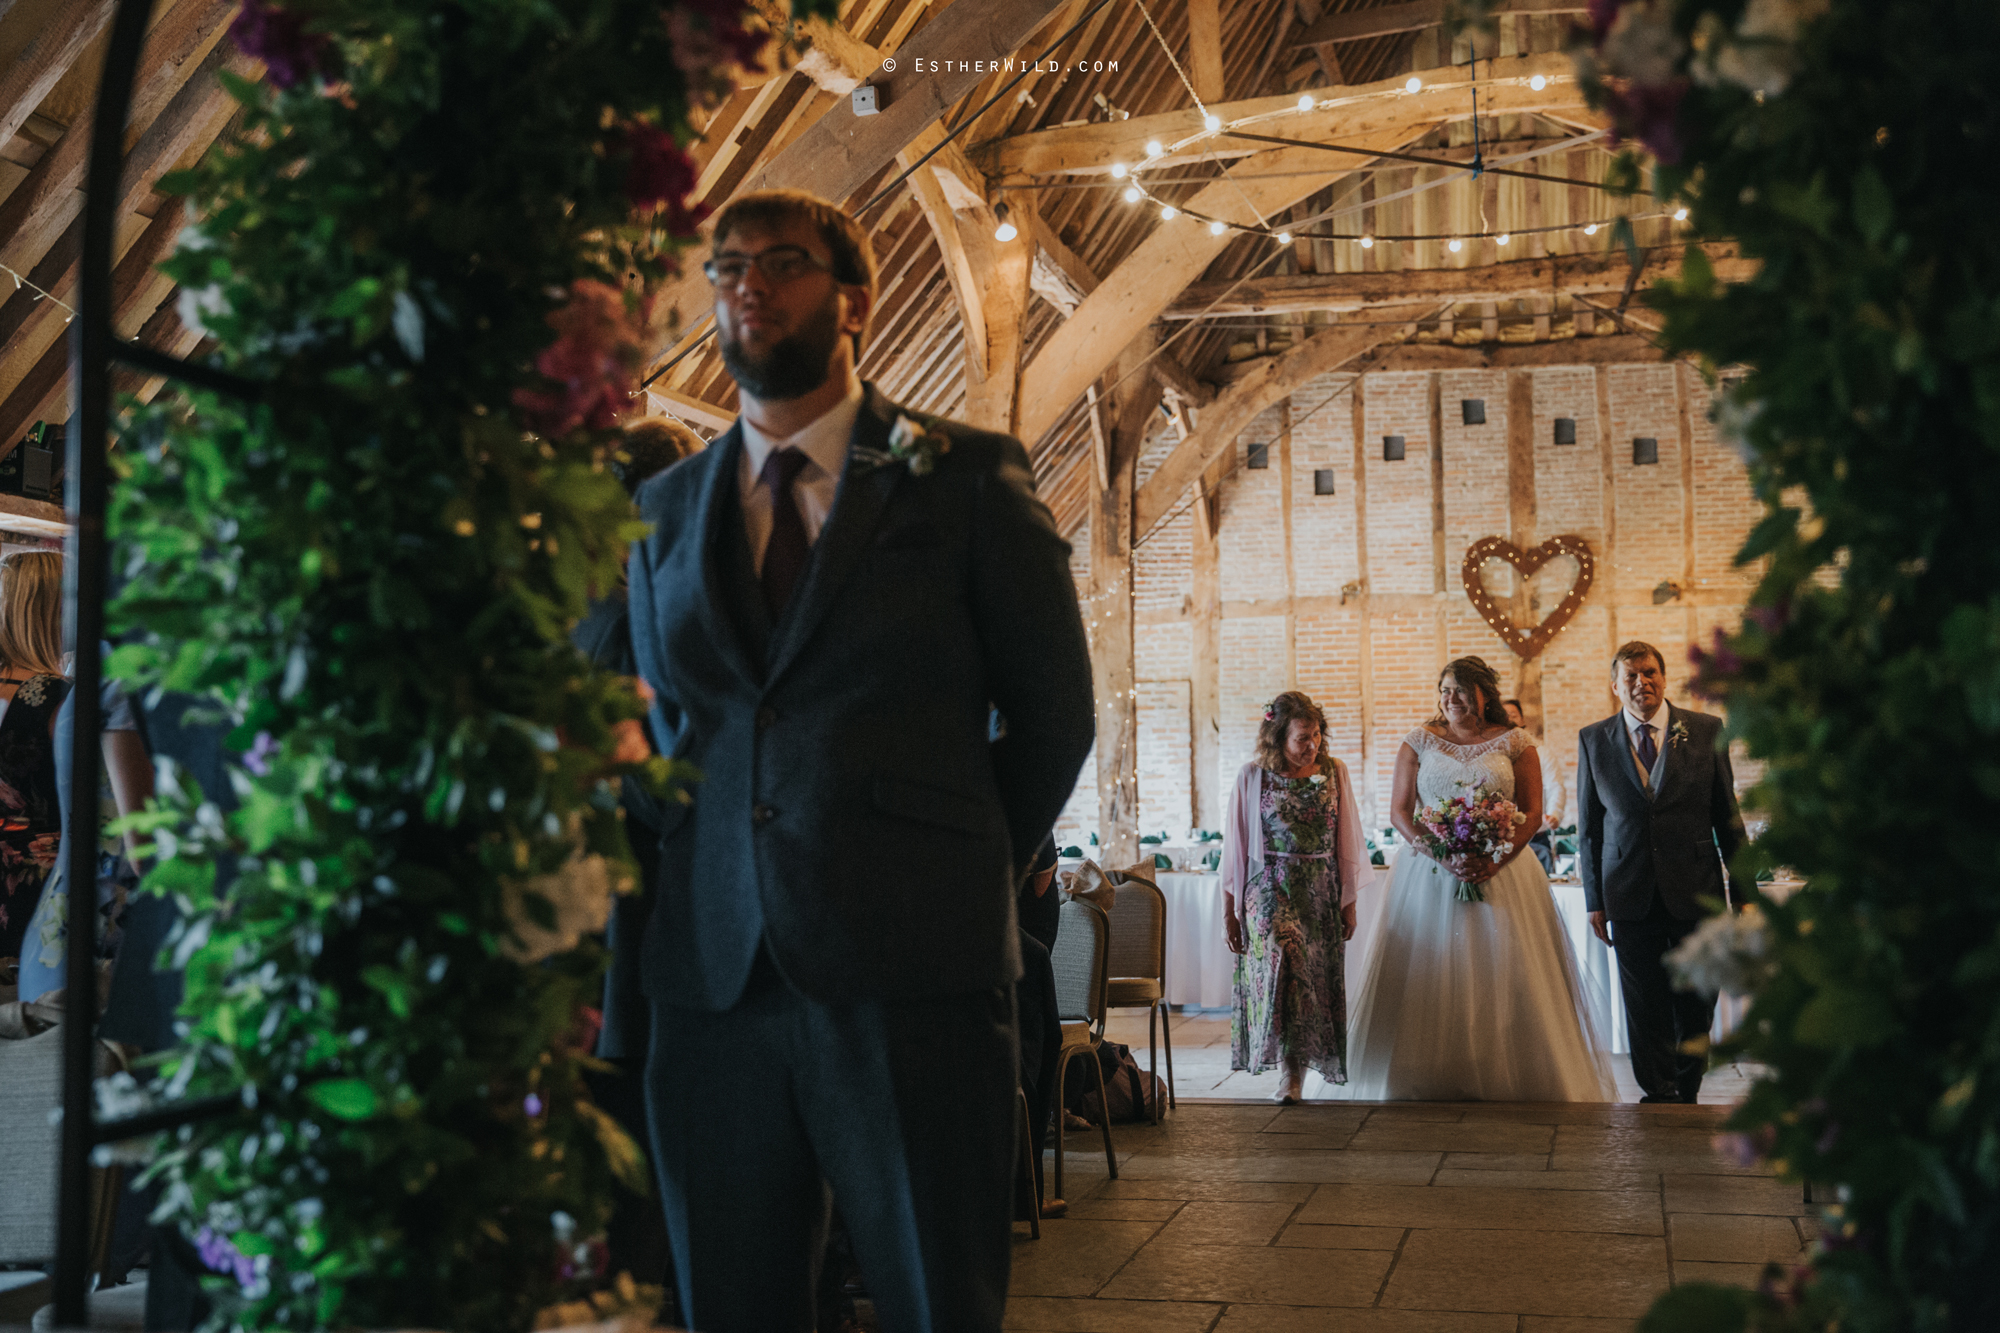 The_Red_Barn_Wedding_Kings_Lynn_Norfolk_IMG_0763.jpg